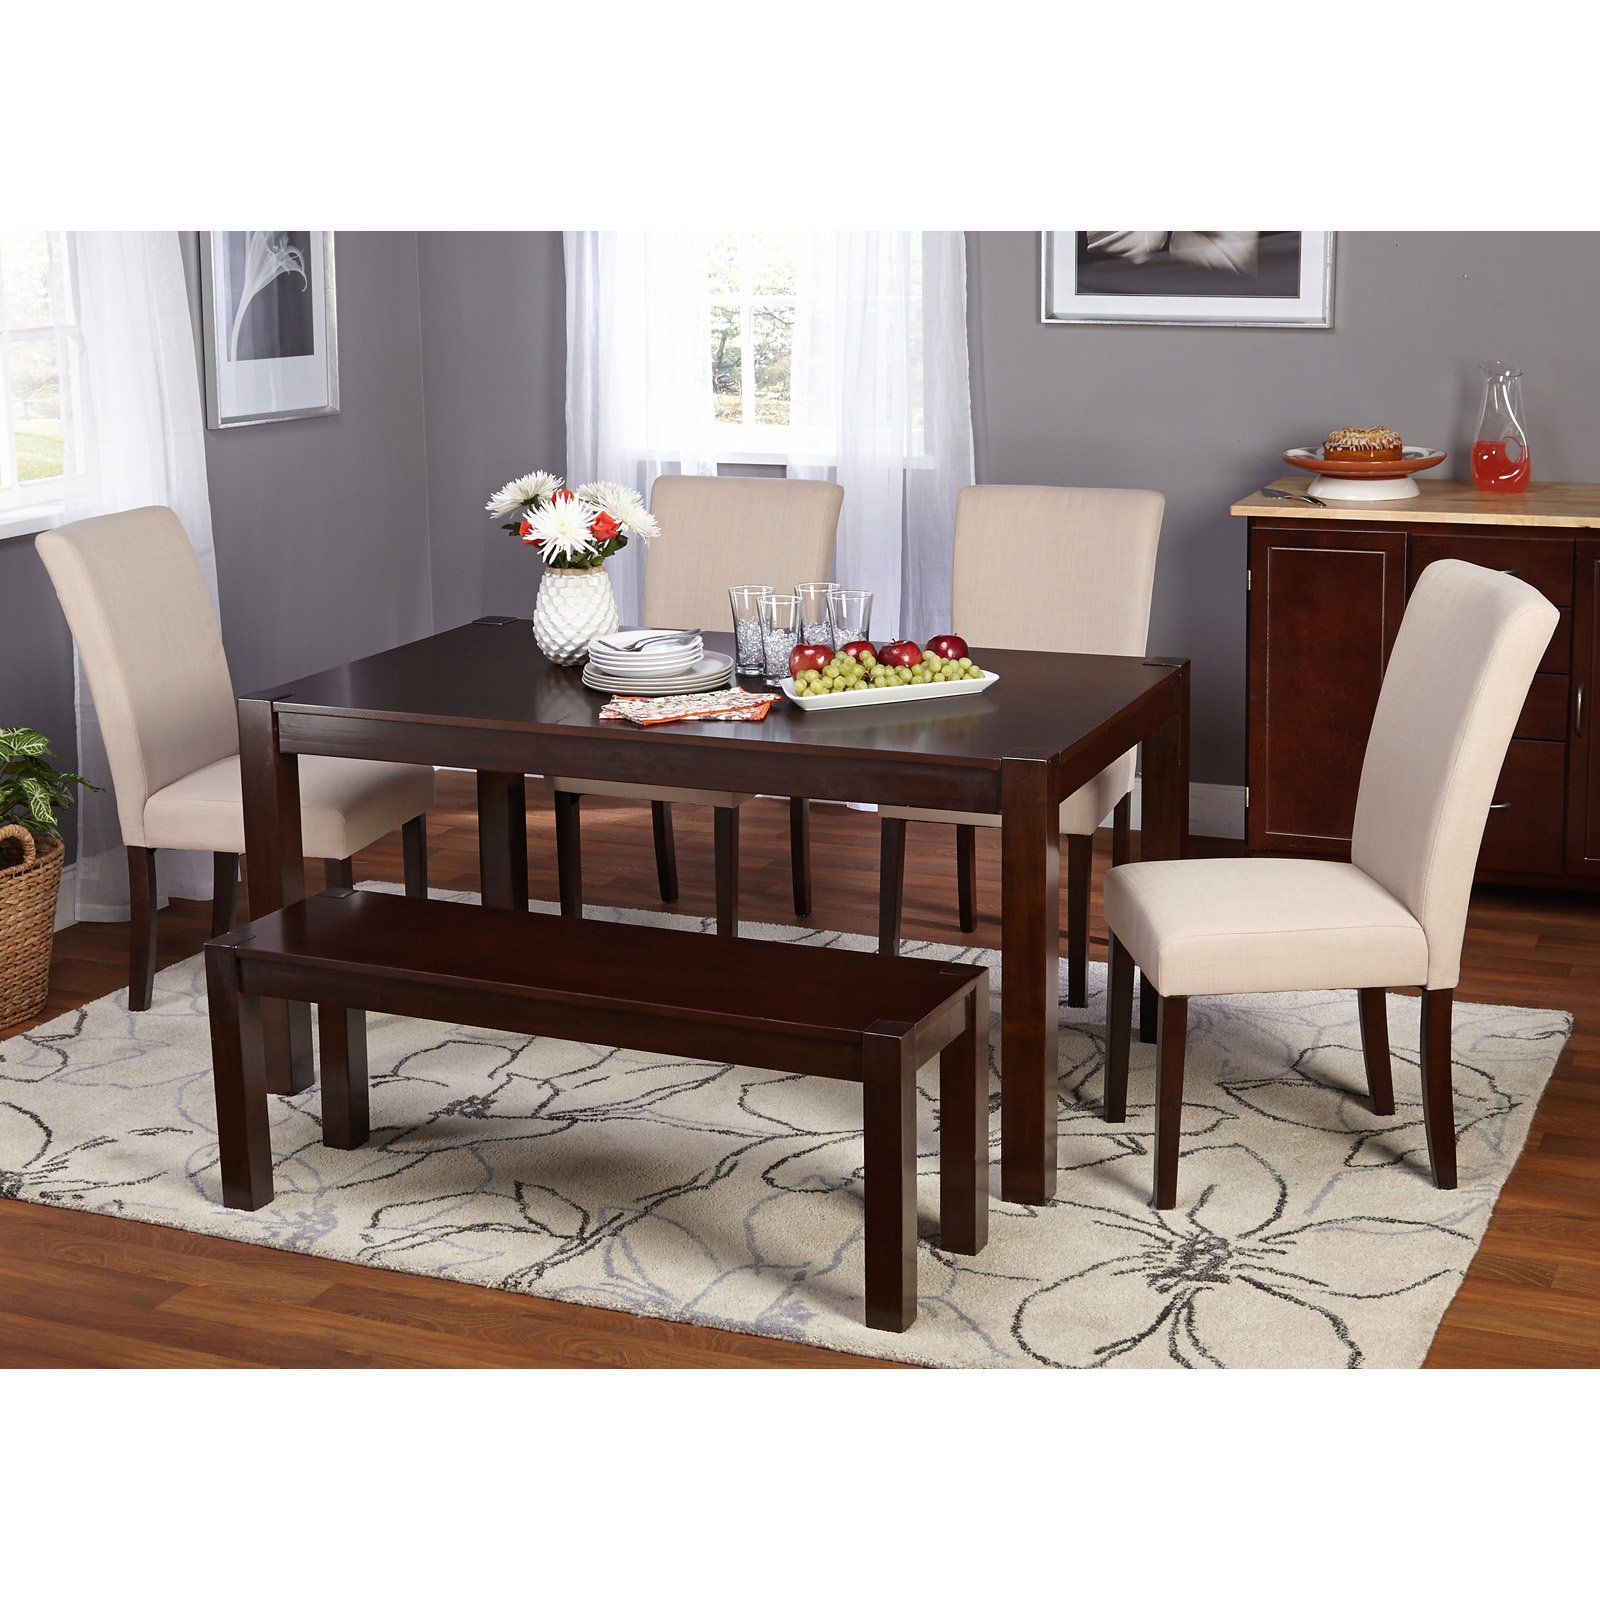 Target Marketing Systems Axis 6 Piece Dining Table Set With Bench    Walmart.com